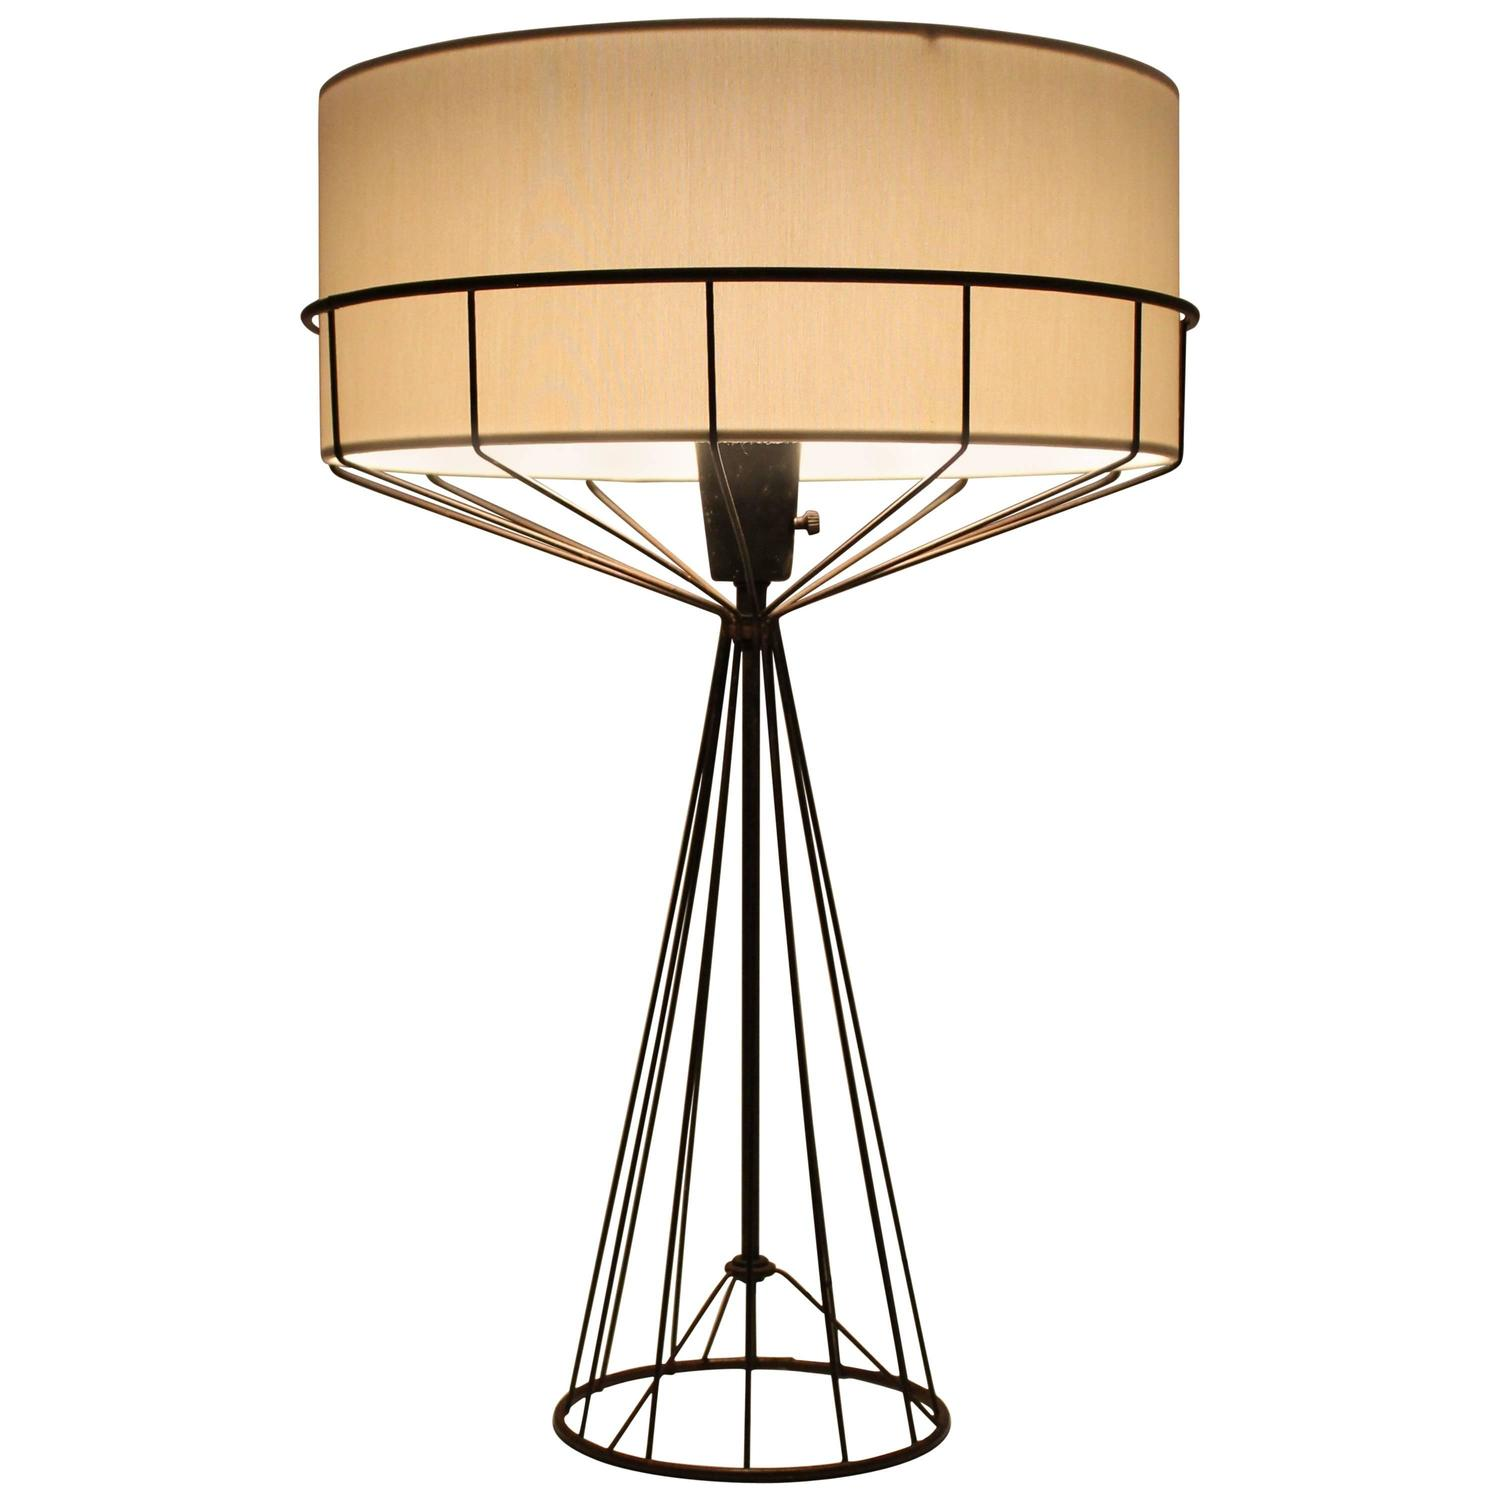 Bent wire base sculptural cone shape table lamp for sale at 1stdibs tony paul table lamp from the wire series mid century modern 1950s greentooth Images